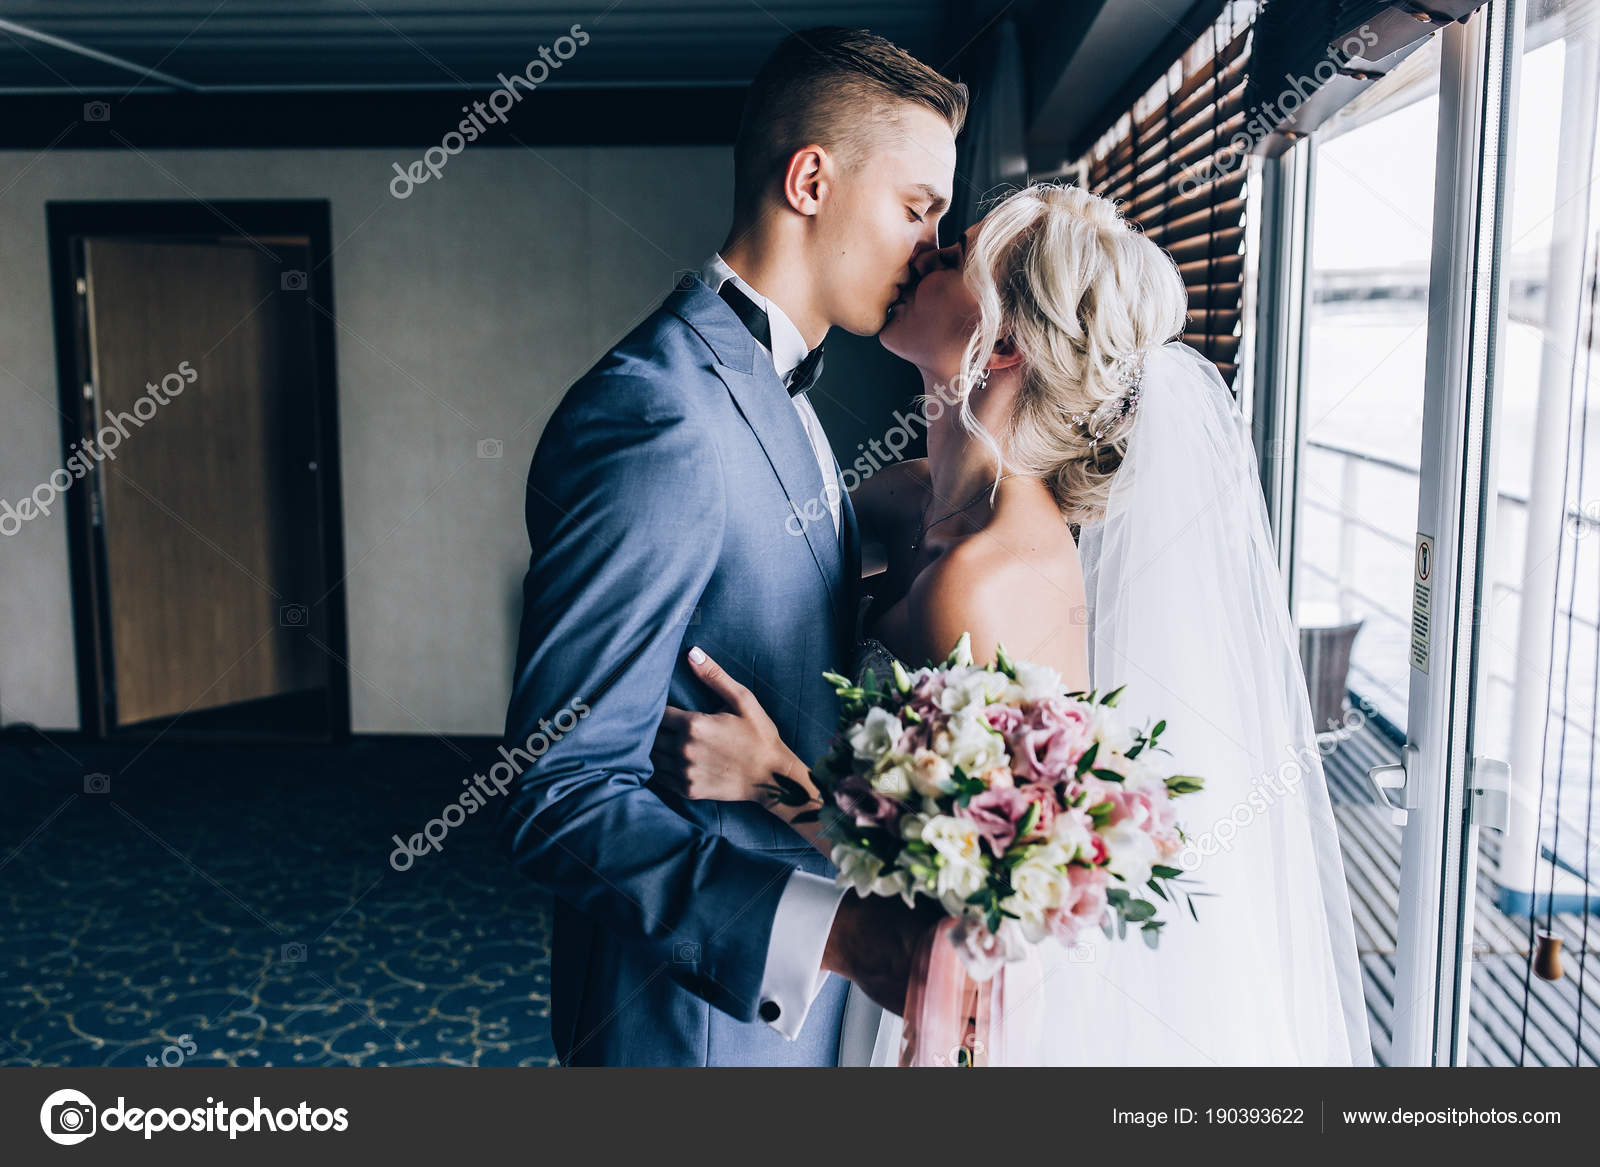 bride groom congratulate each other meeting newlyweds stock photo